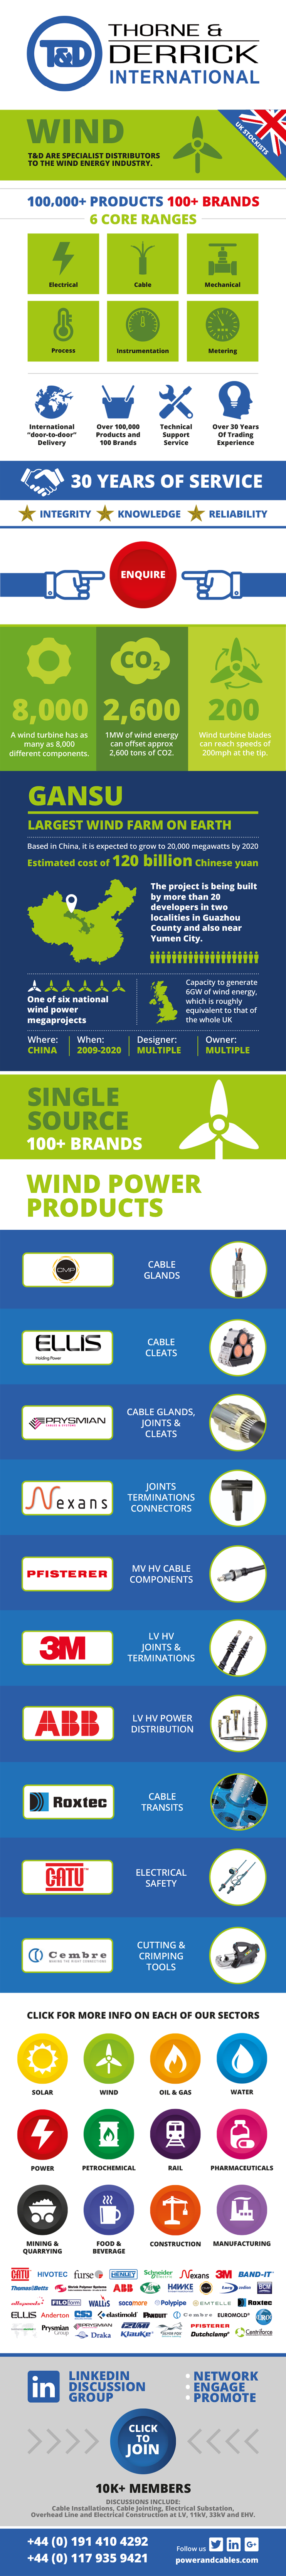 Wind Infographic